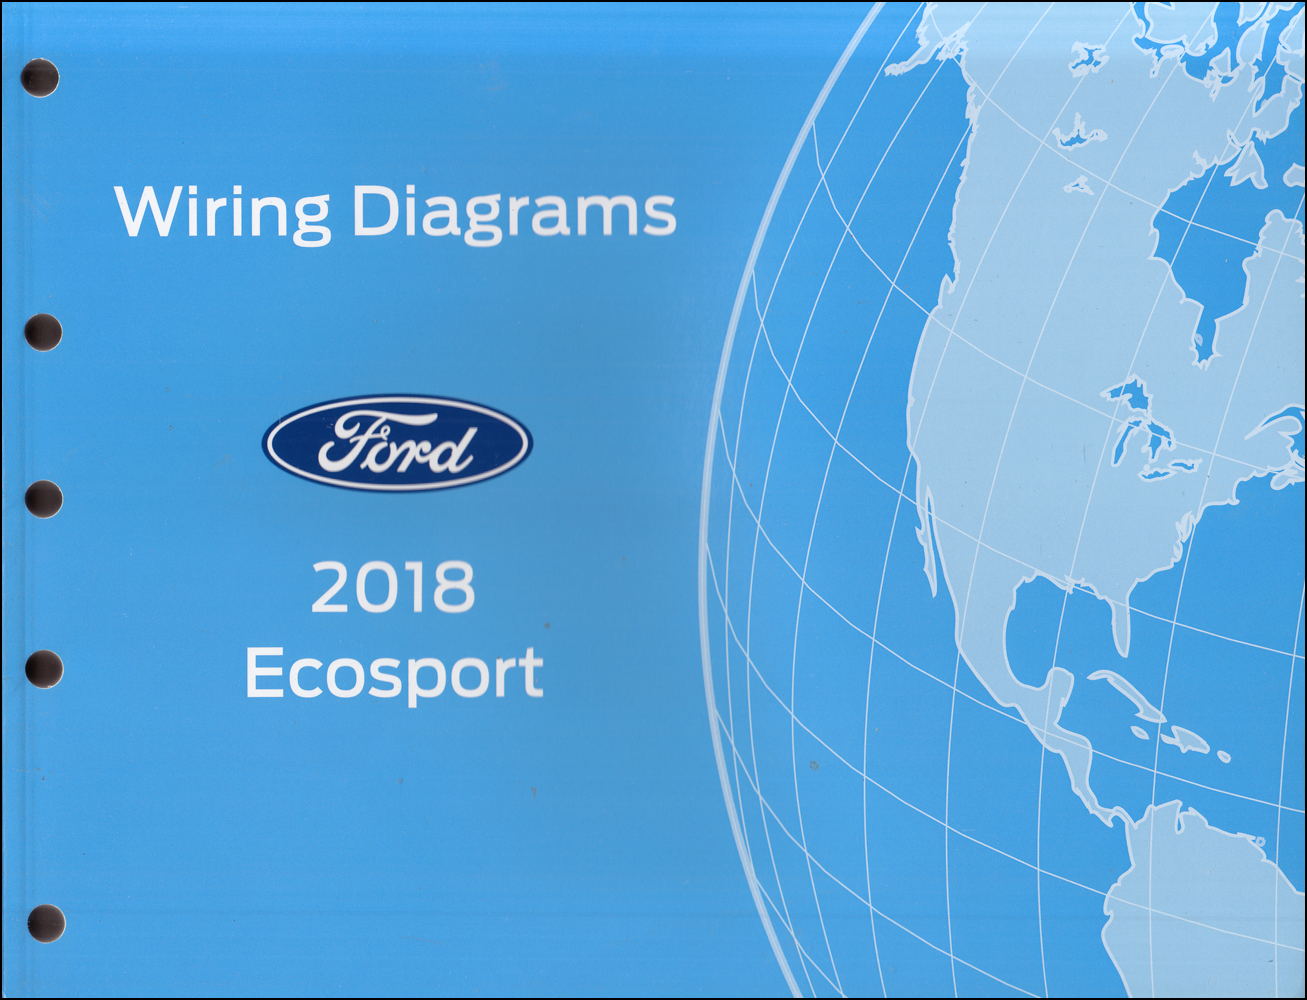 2018 Ford Ecosport Wiring Diagram Manual Original